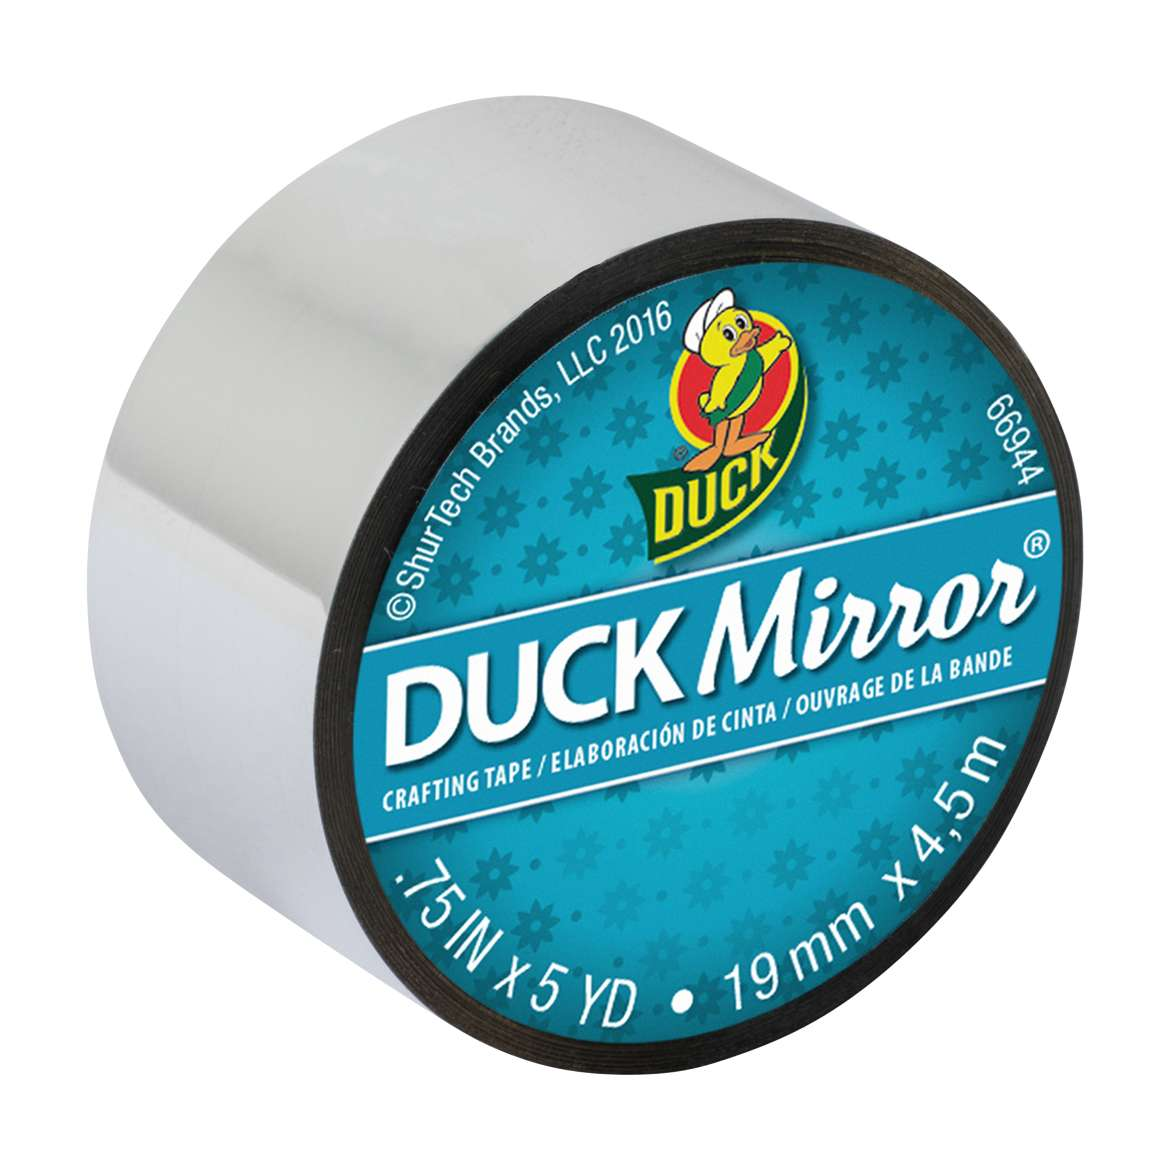 Duck Mirror® Crafting Tape Image